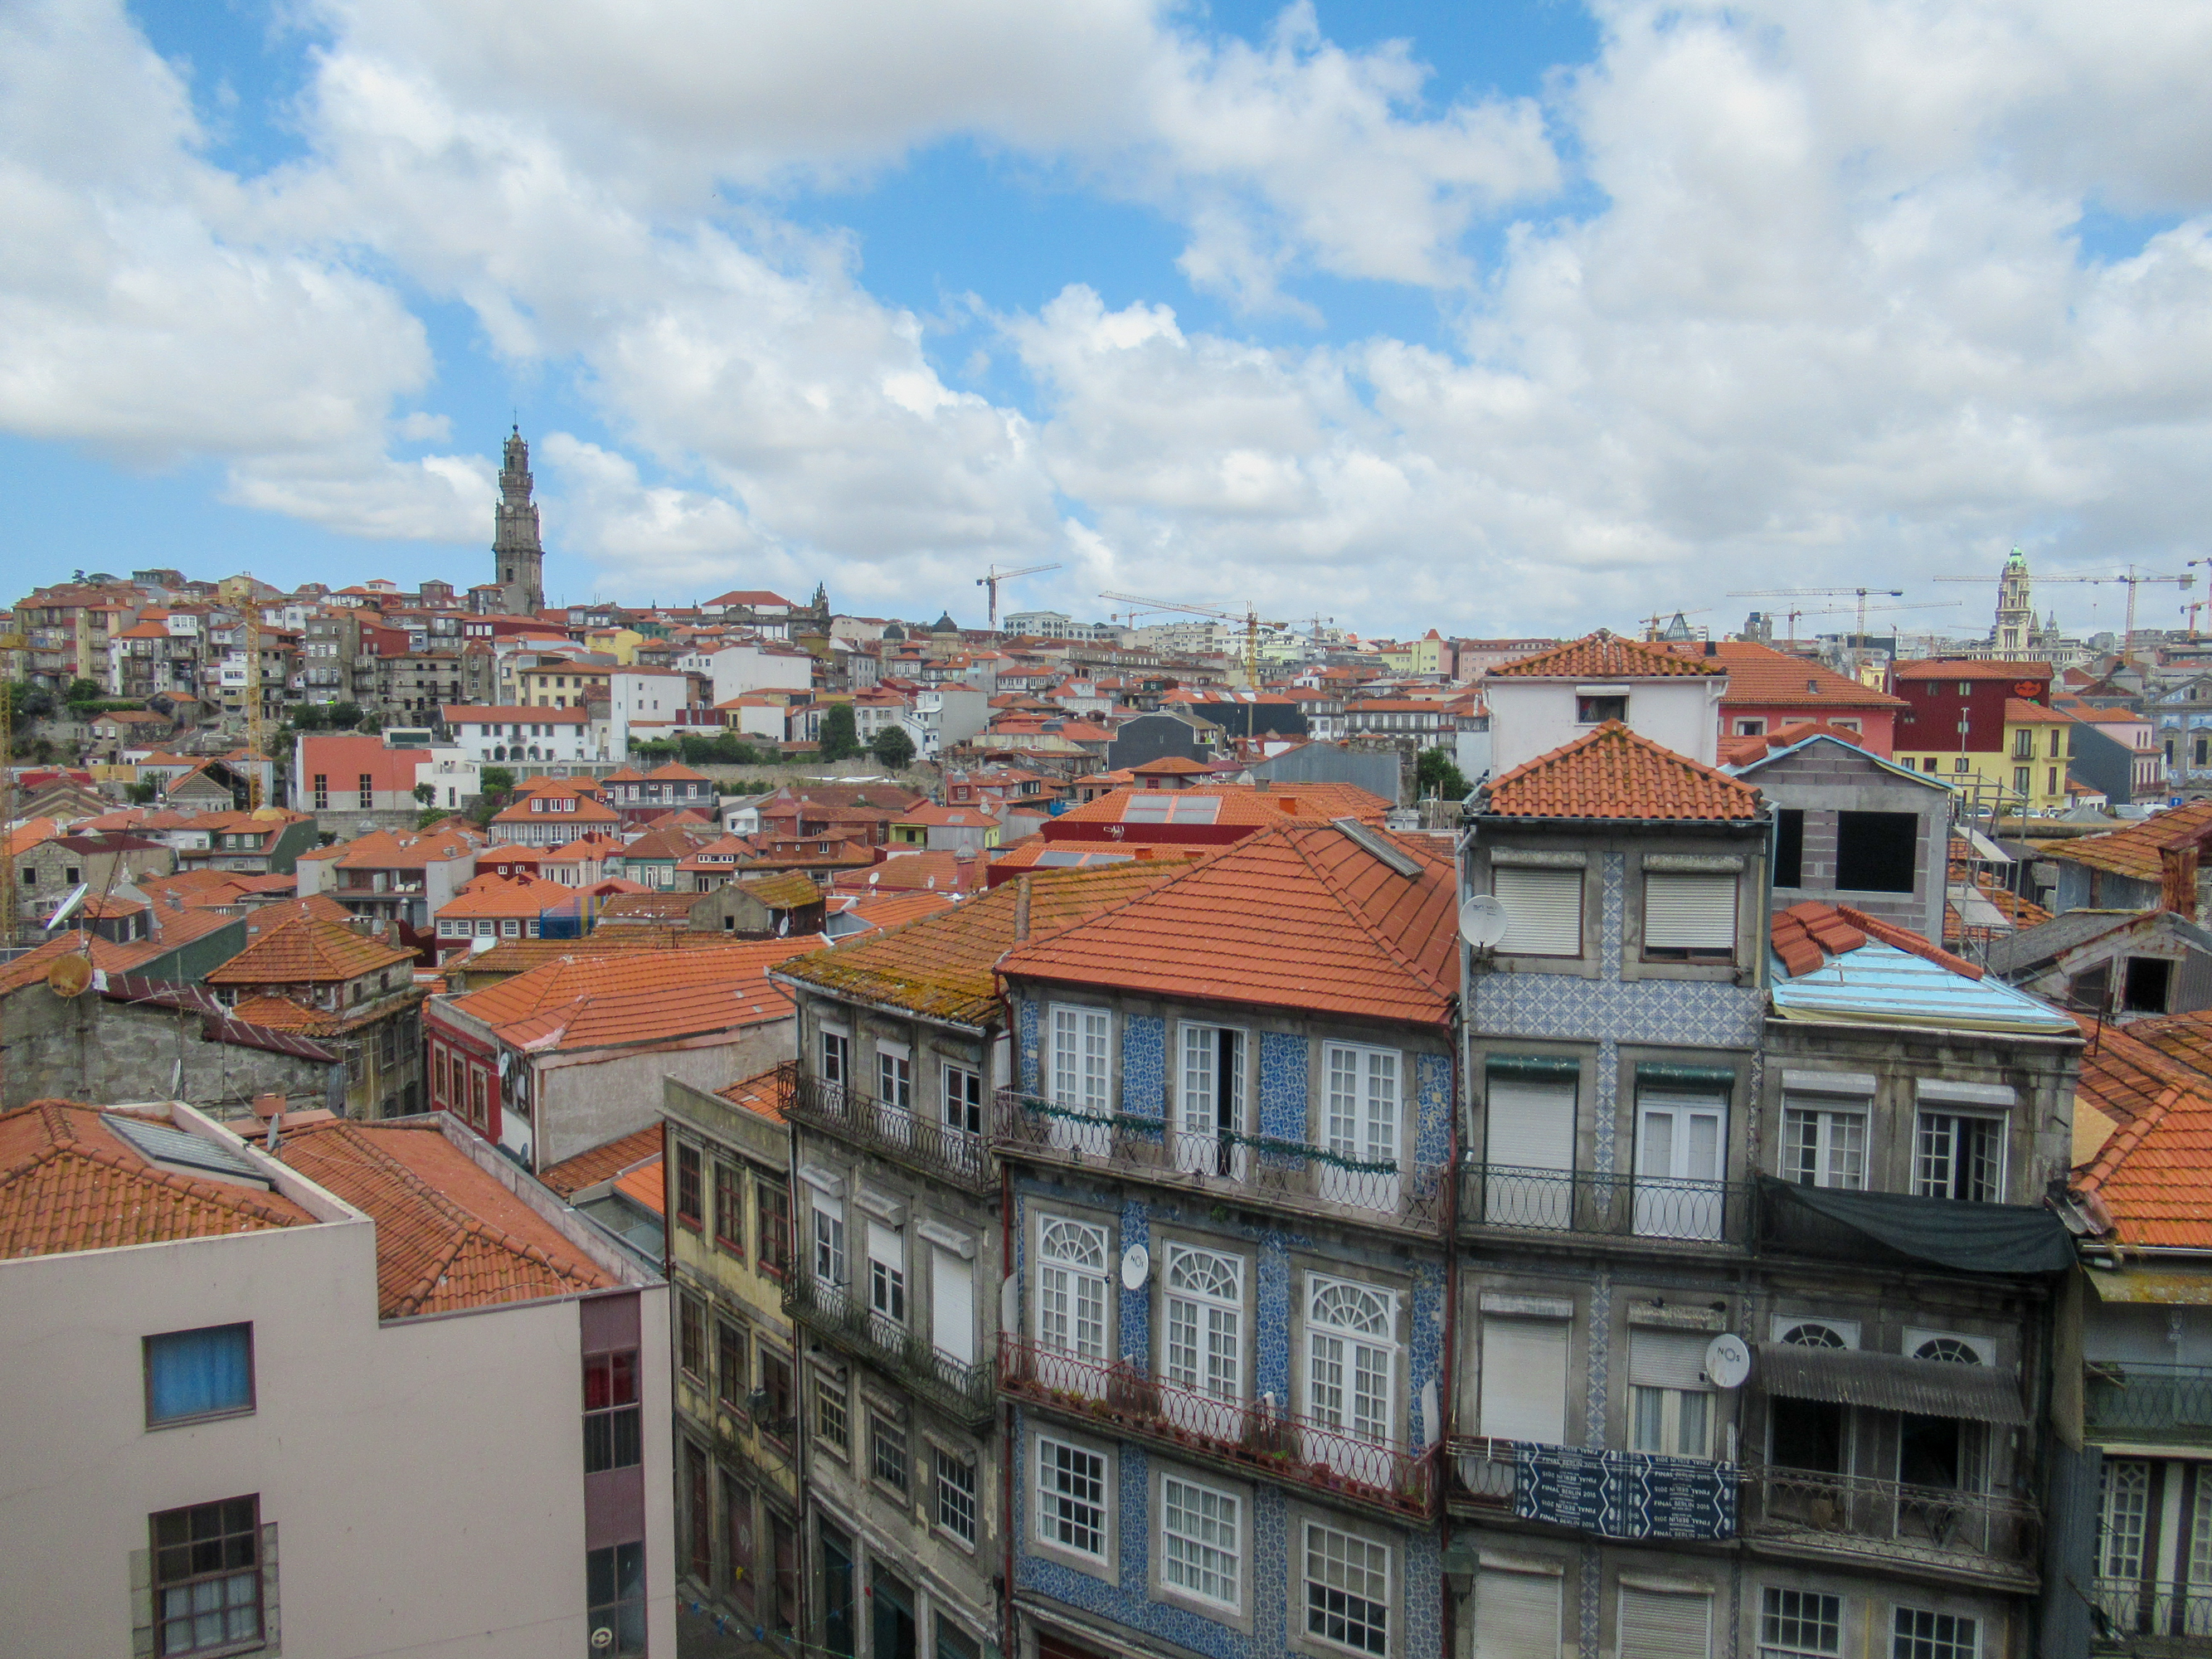 Tiled roofs in Porto, Portugal.